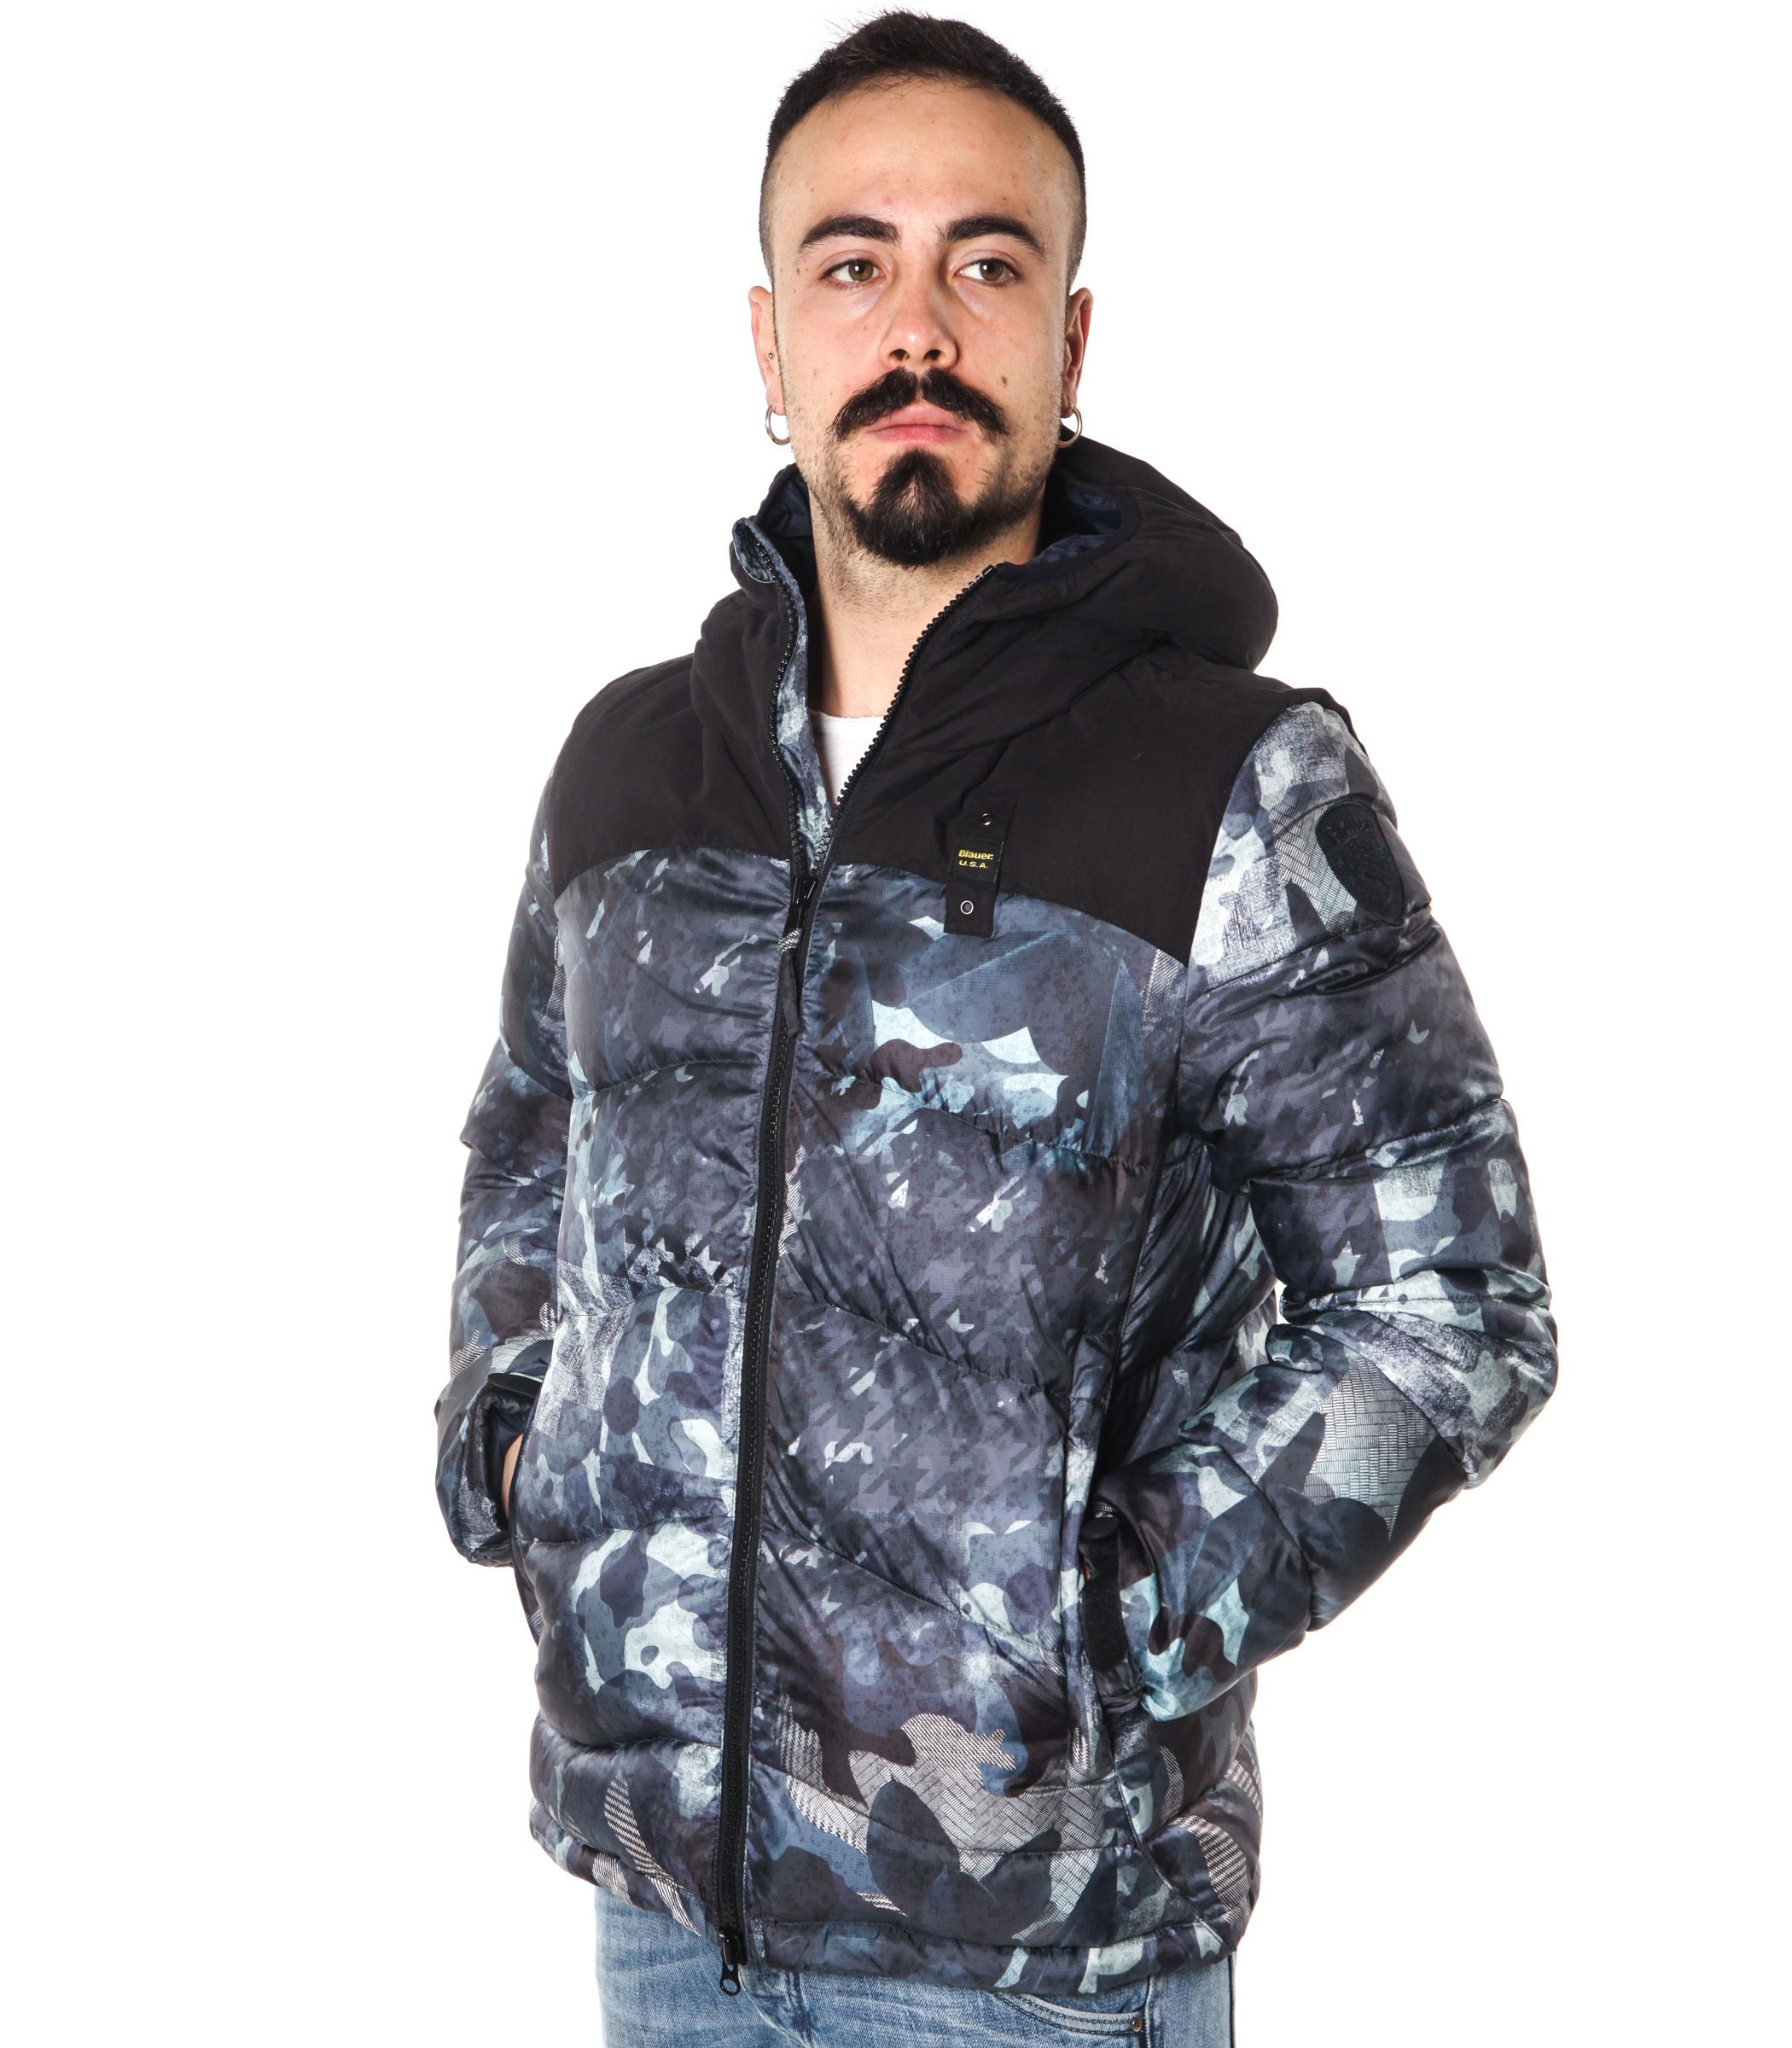 huge selection of 2d464 c7caa Giubbotto Piumino Blauer USA camouflage uomo rif ...